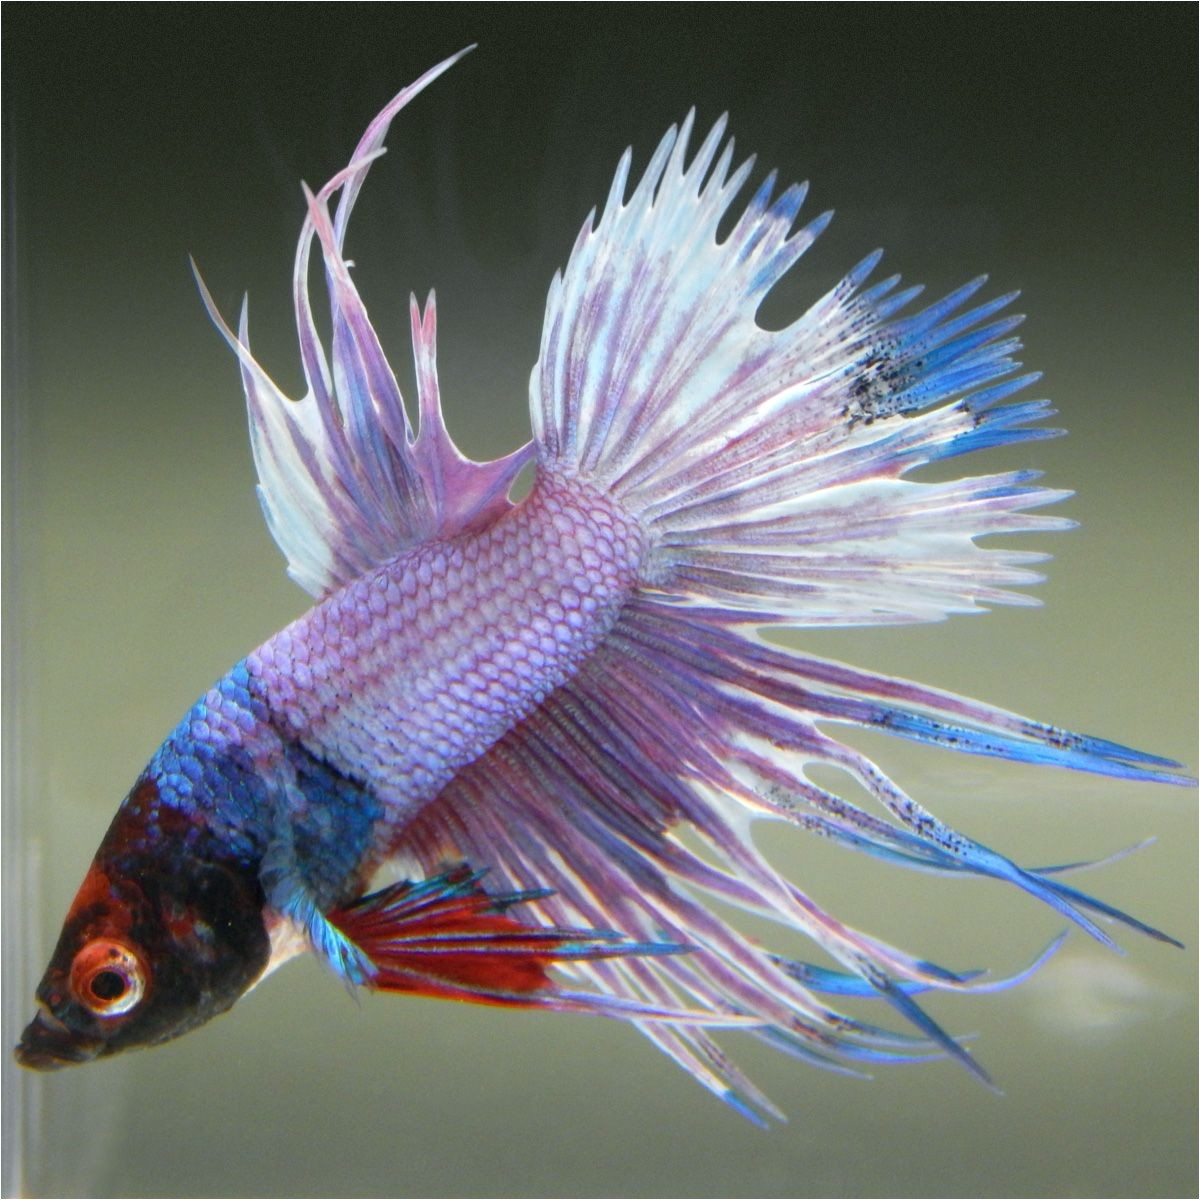 Purple Betta Fish for Sale Live Betta Fish Male Red Mask Fancy Rainbow Marble Crowntail